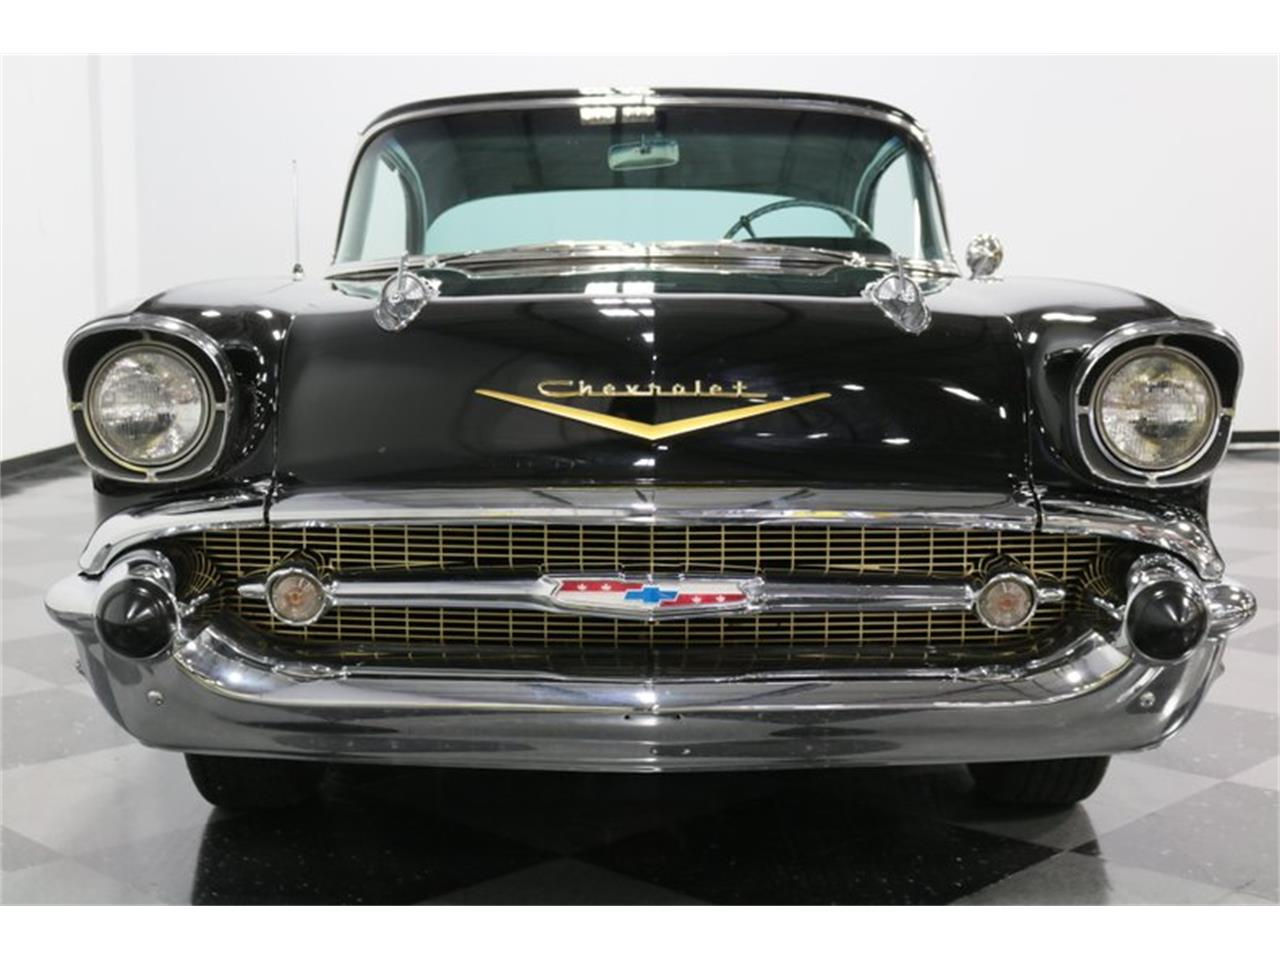 Large Picture of '57 Chevrolet Bel Air located in Texas Offered by Streetside Classics - Dallas / Fort Worth - Q46F